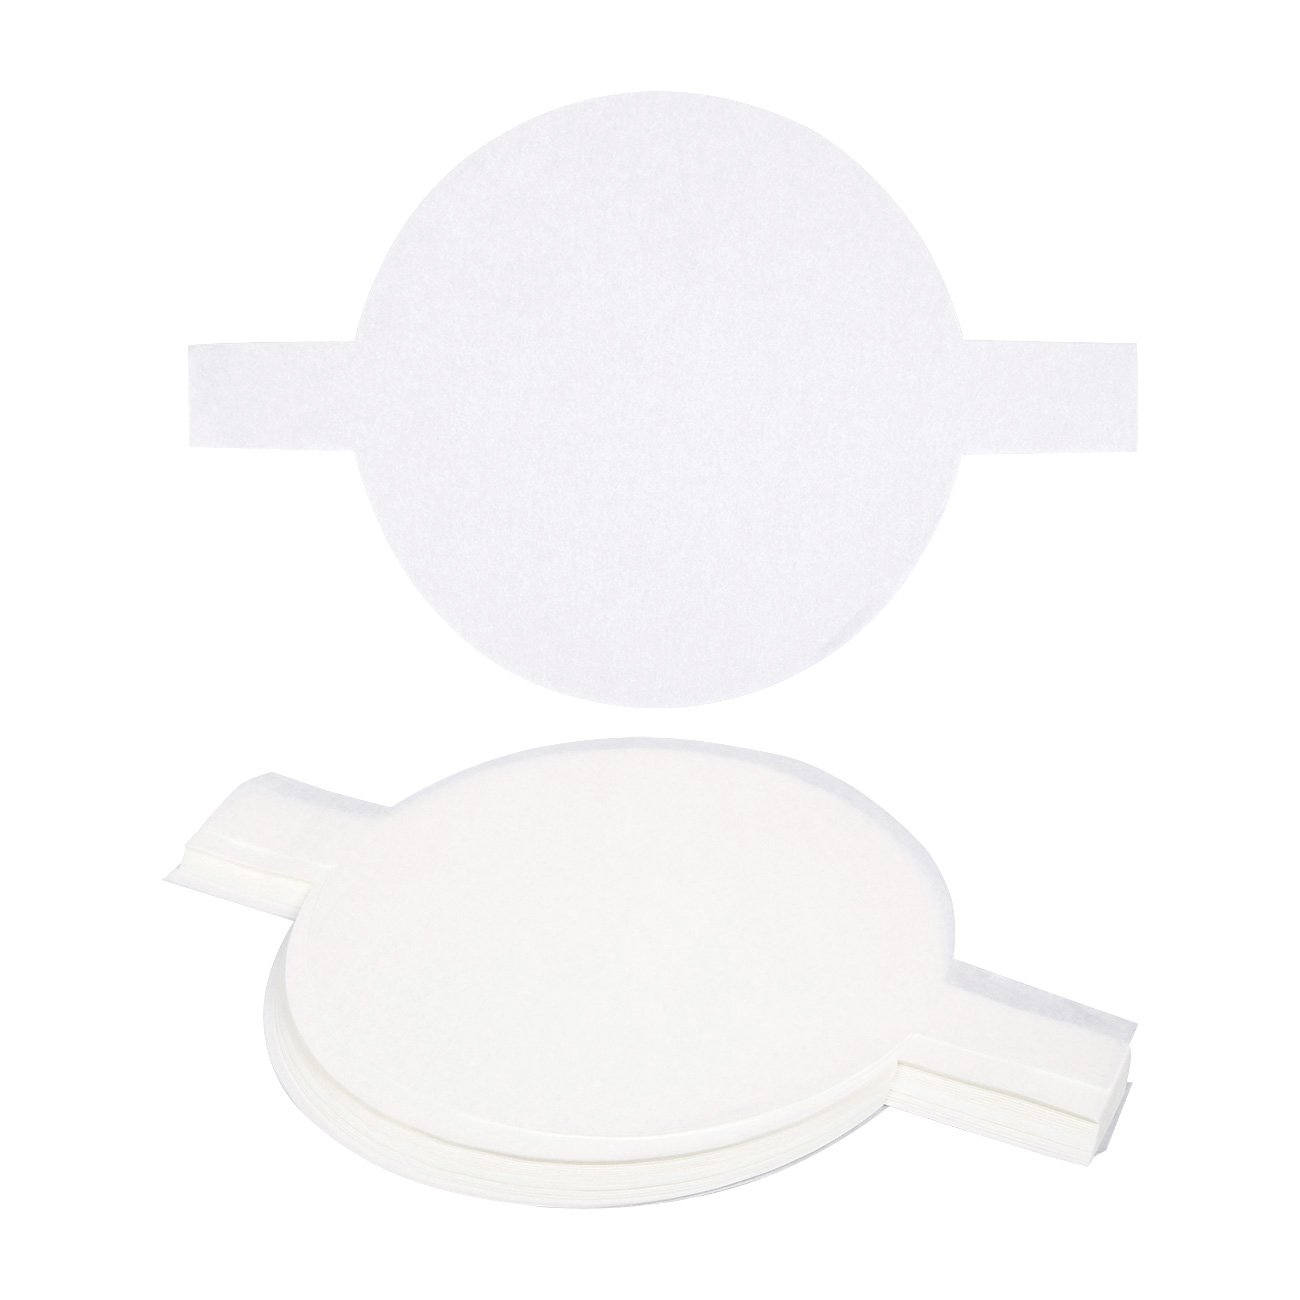 Parchment Paper Rounds - 100-Count 9 Inch Parchment Rounds, Round Parchment Paper for Baking, Precut Circle Cake Pan Liners with Easy Lift Tabs, Non-Stick, White